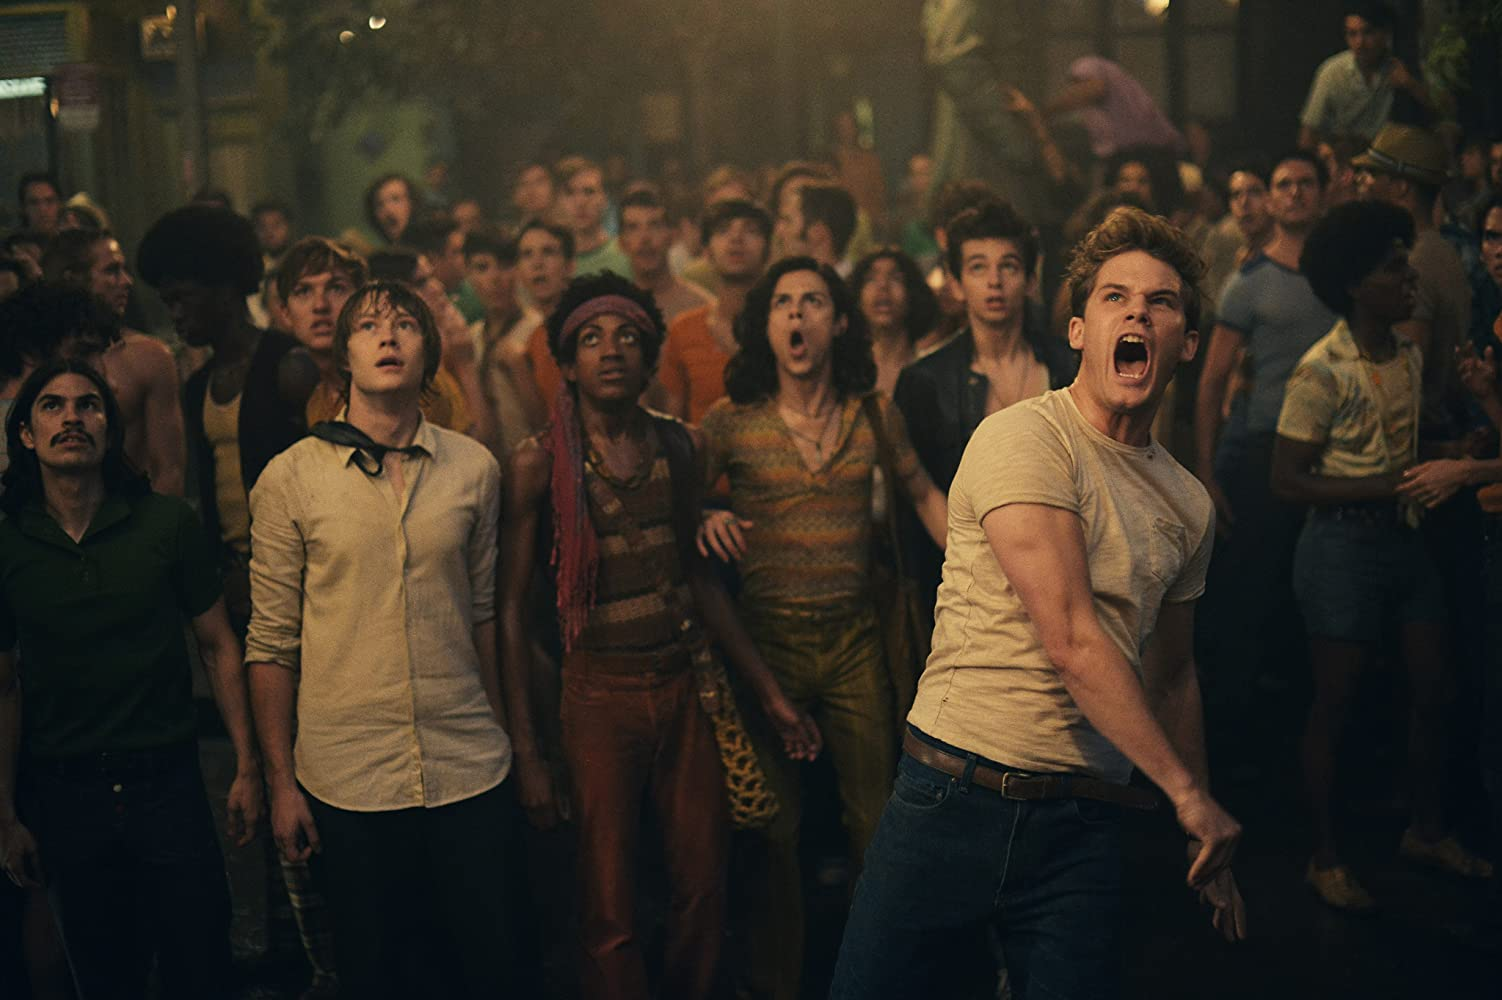 Jeremy Irvine and Jonny Beauchamp in Stonewall (2015)